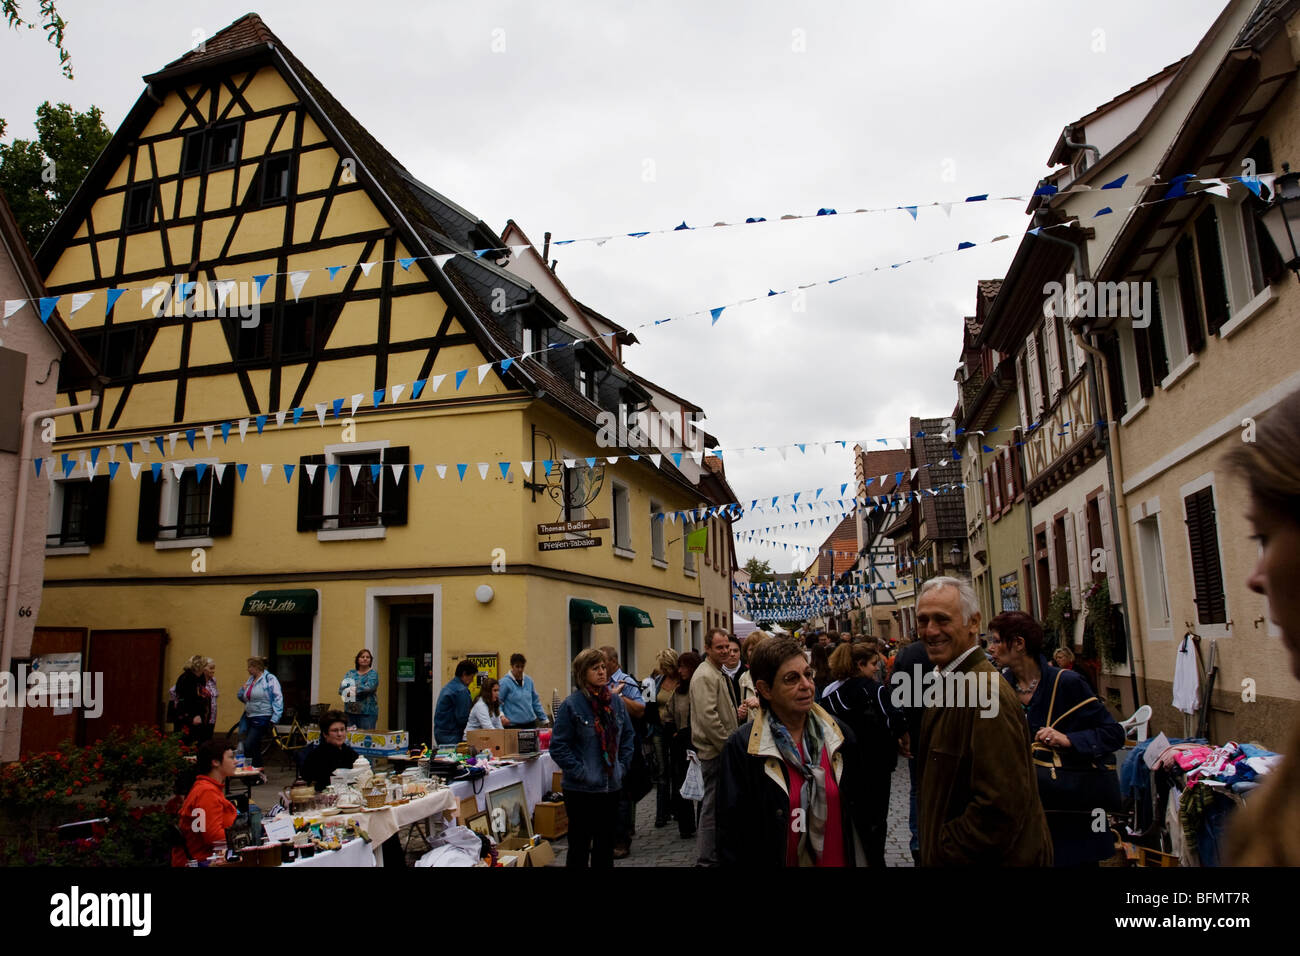 A flea market takes place in the historic heart of Ladenburg, Germany - Stock Image